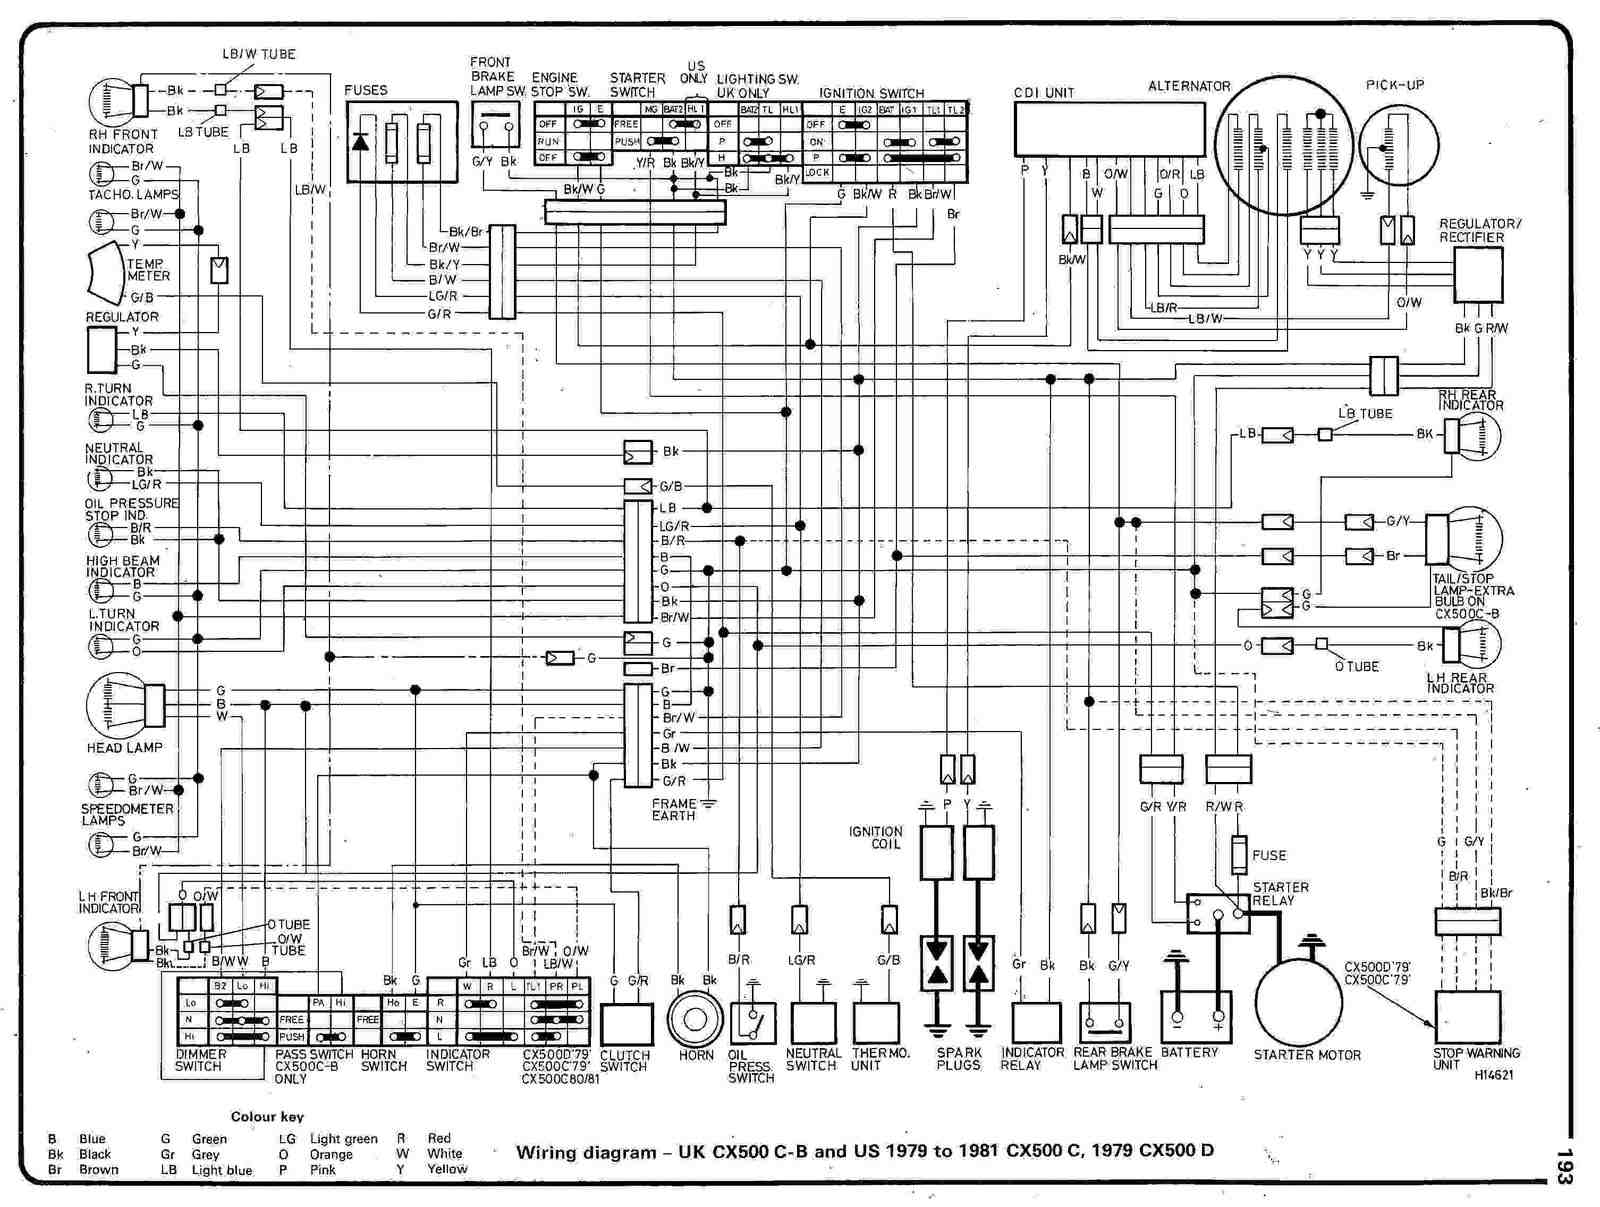 Wiring Diagram 81 Honda Cx500 - Wiring Diagrams DatabaseDiamond Car Service